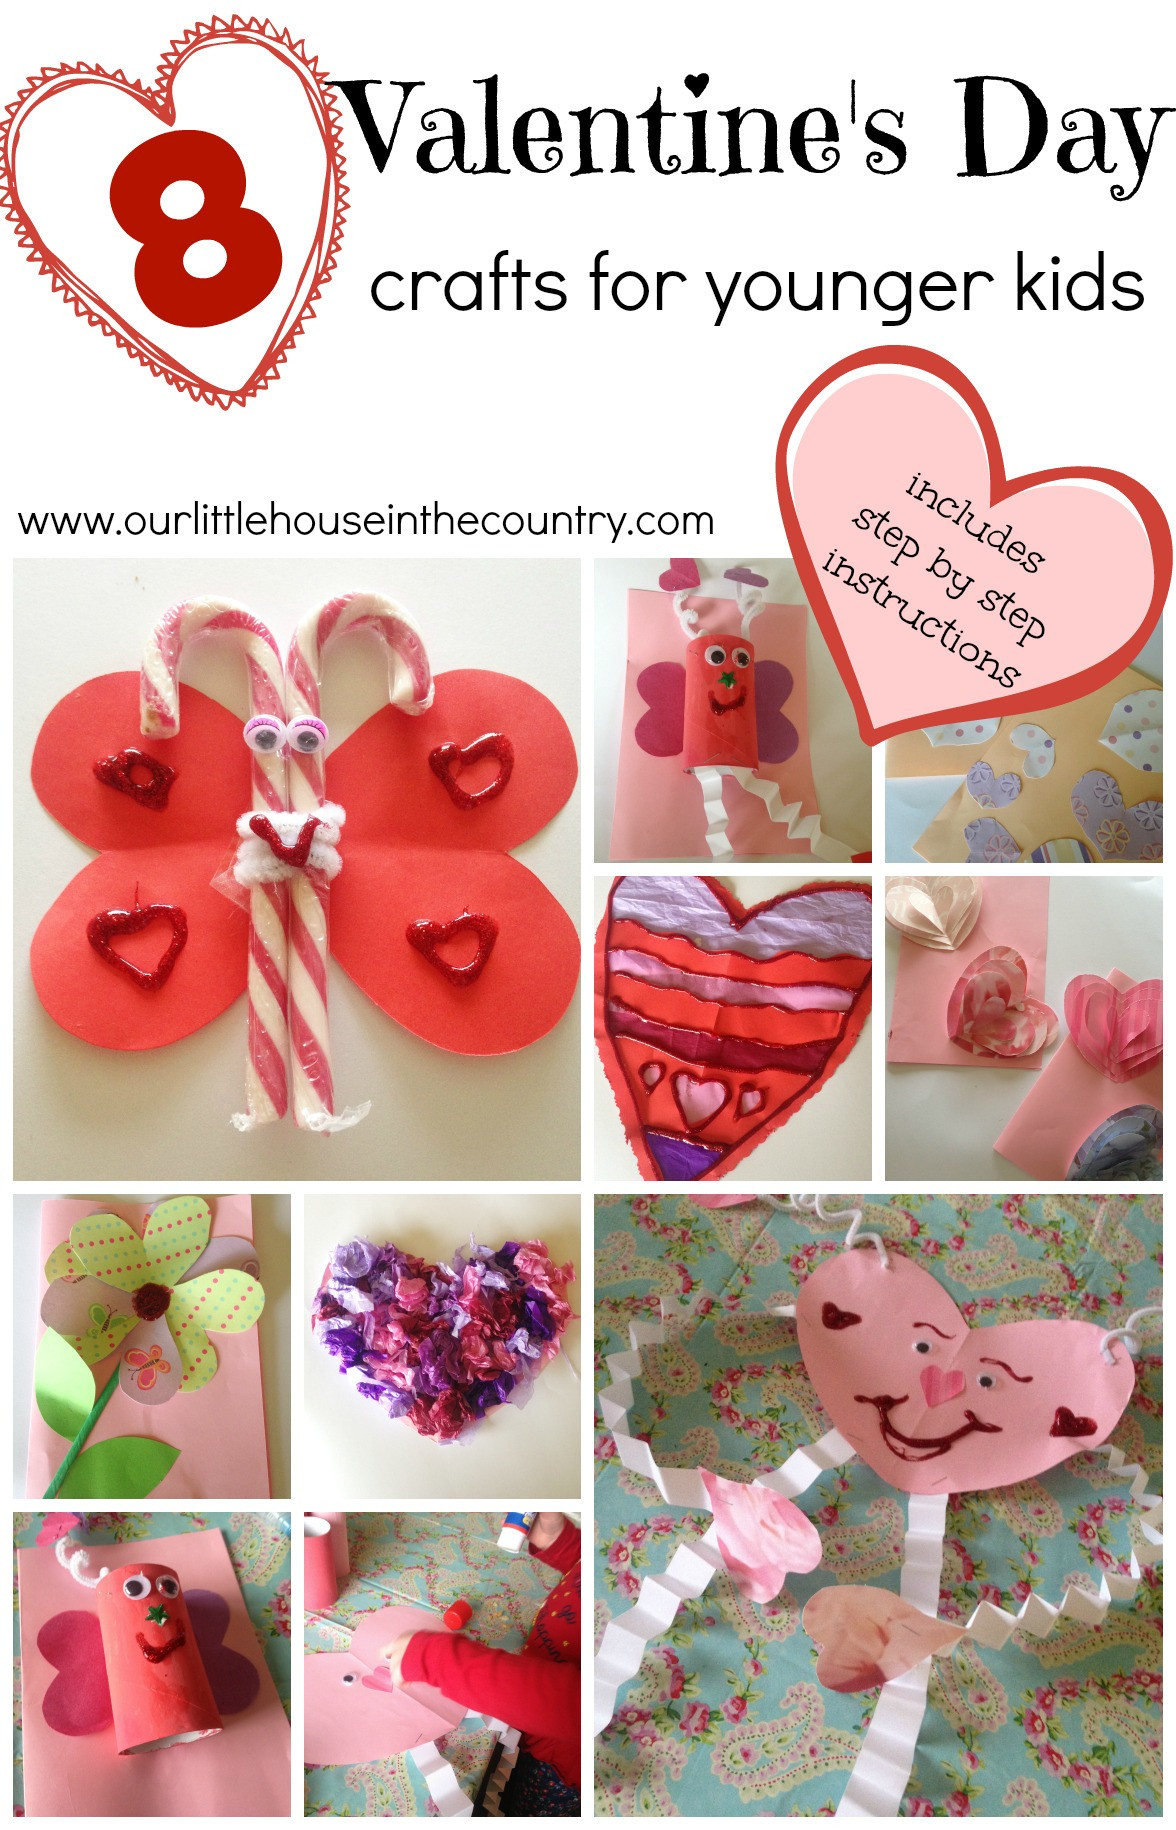 Valentine Day Craft Ideas For Preschoolers  Valentine's Day Crafts for Younger Children Preschool and